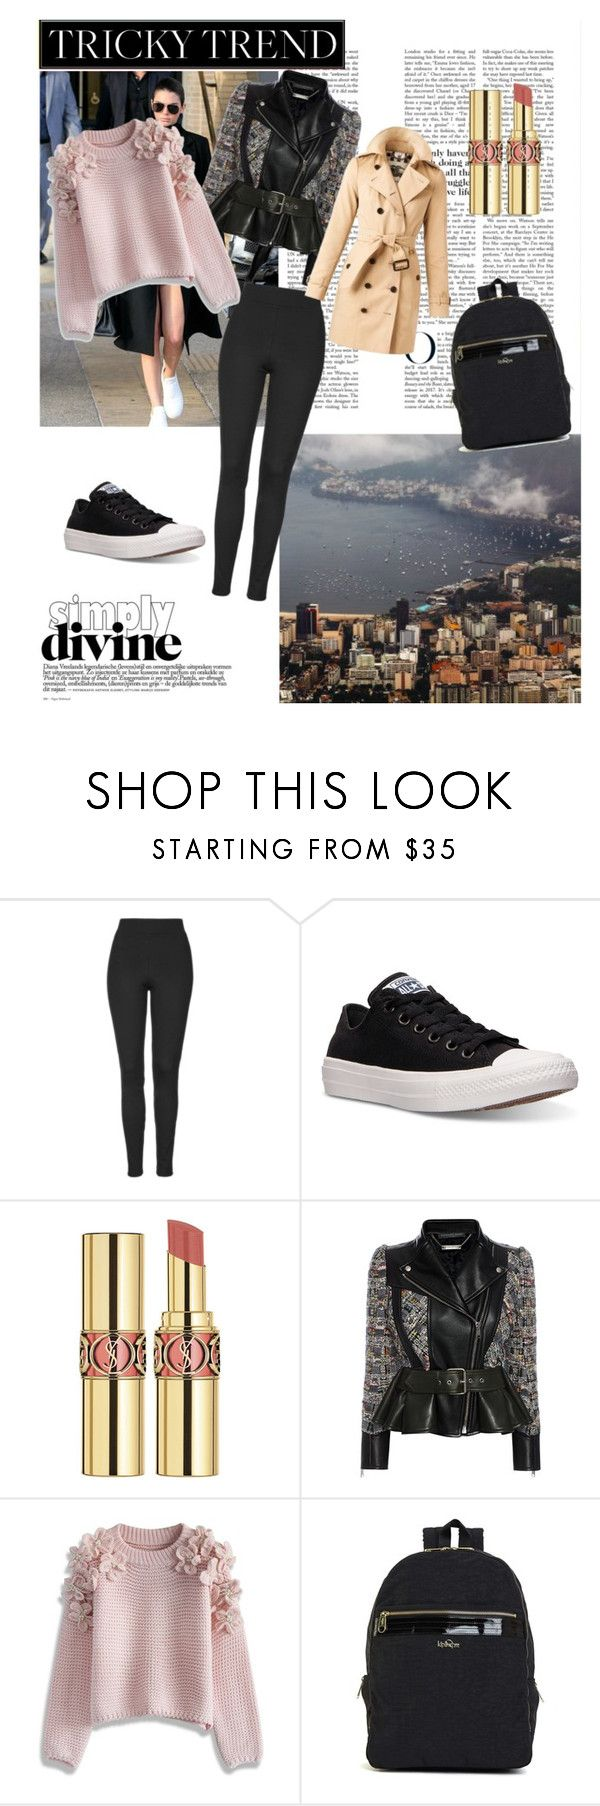 """""""Today's outfit: family reunion"""" by cixara ❤ liked on Polyvore featuring Lonely Planet, Topshop, Converse, Yves Saint Laurent, Alexander McQueen, Chicwish and Burberry"""